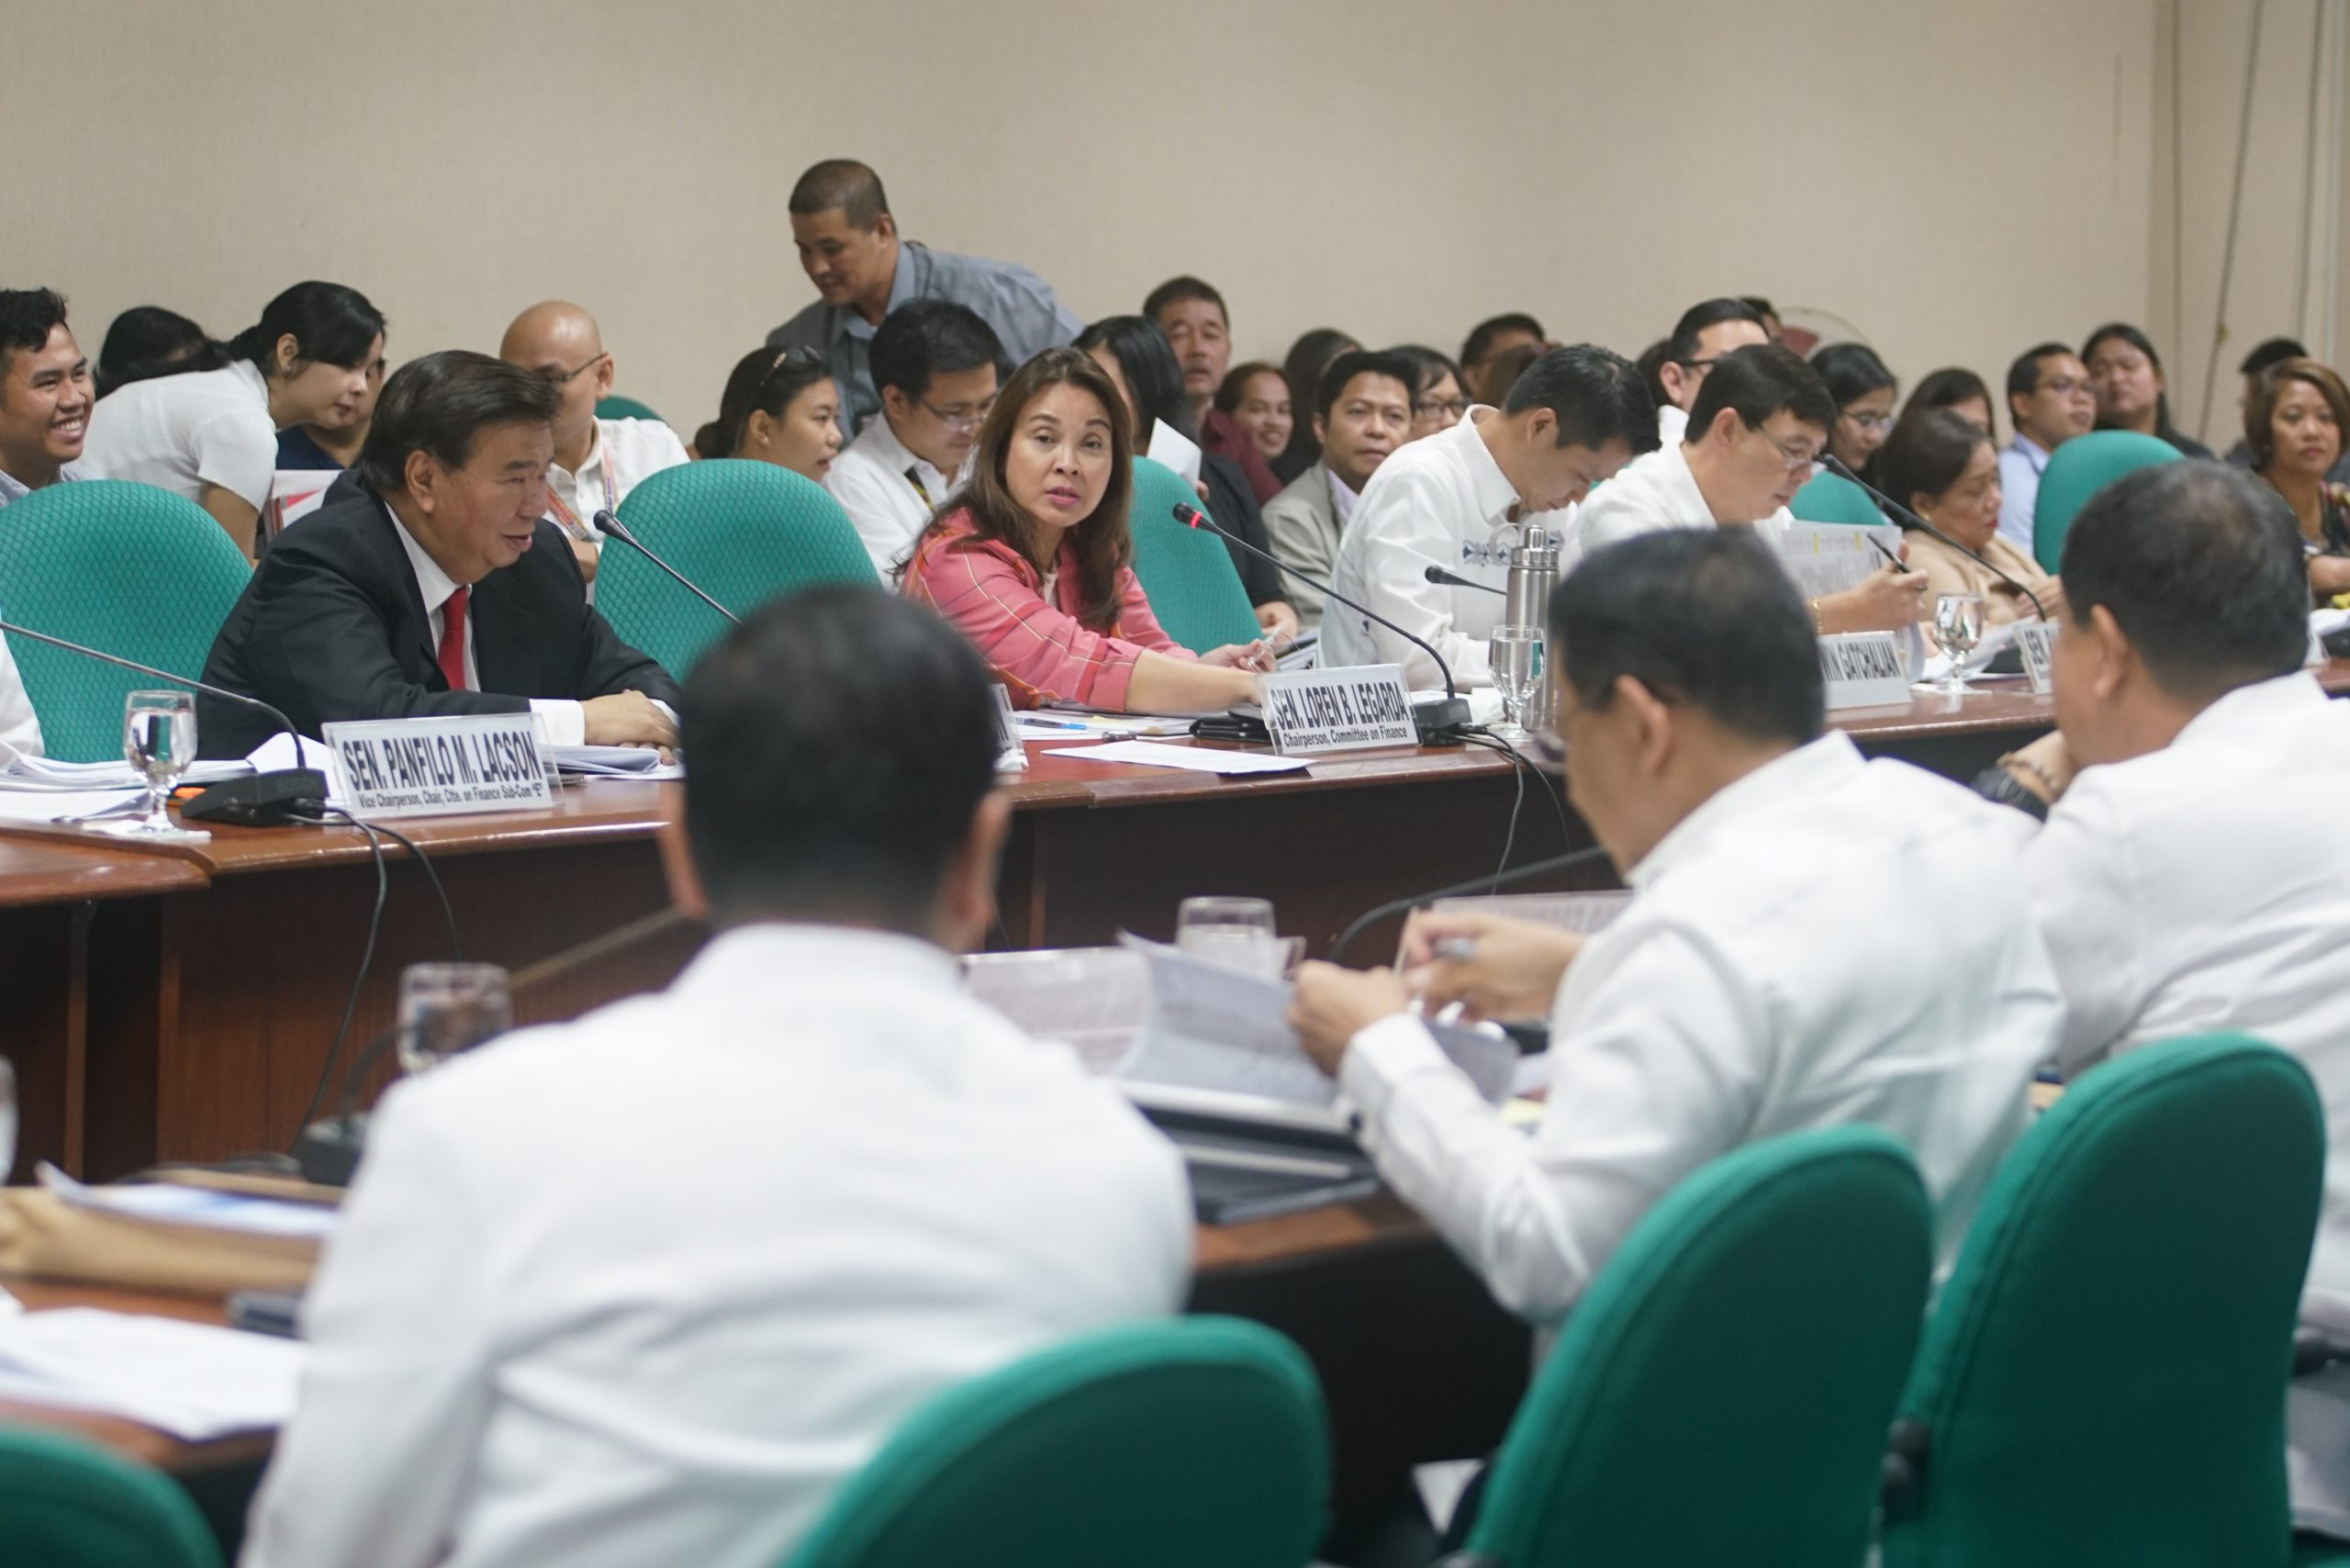 Briefing by the Development Budget Coordination Committee (DBCC) on the 2018 National Expenditure Program (NEP)